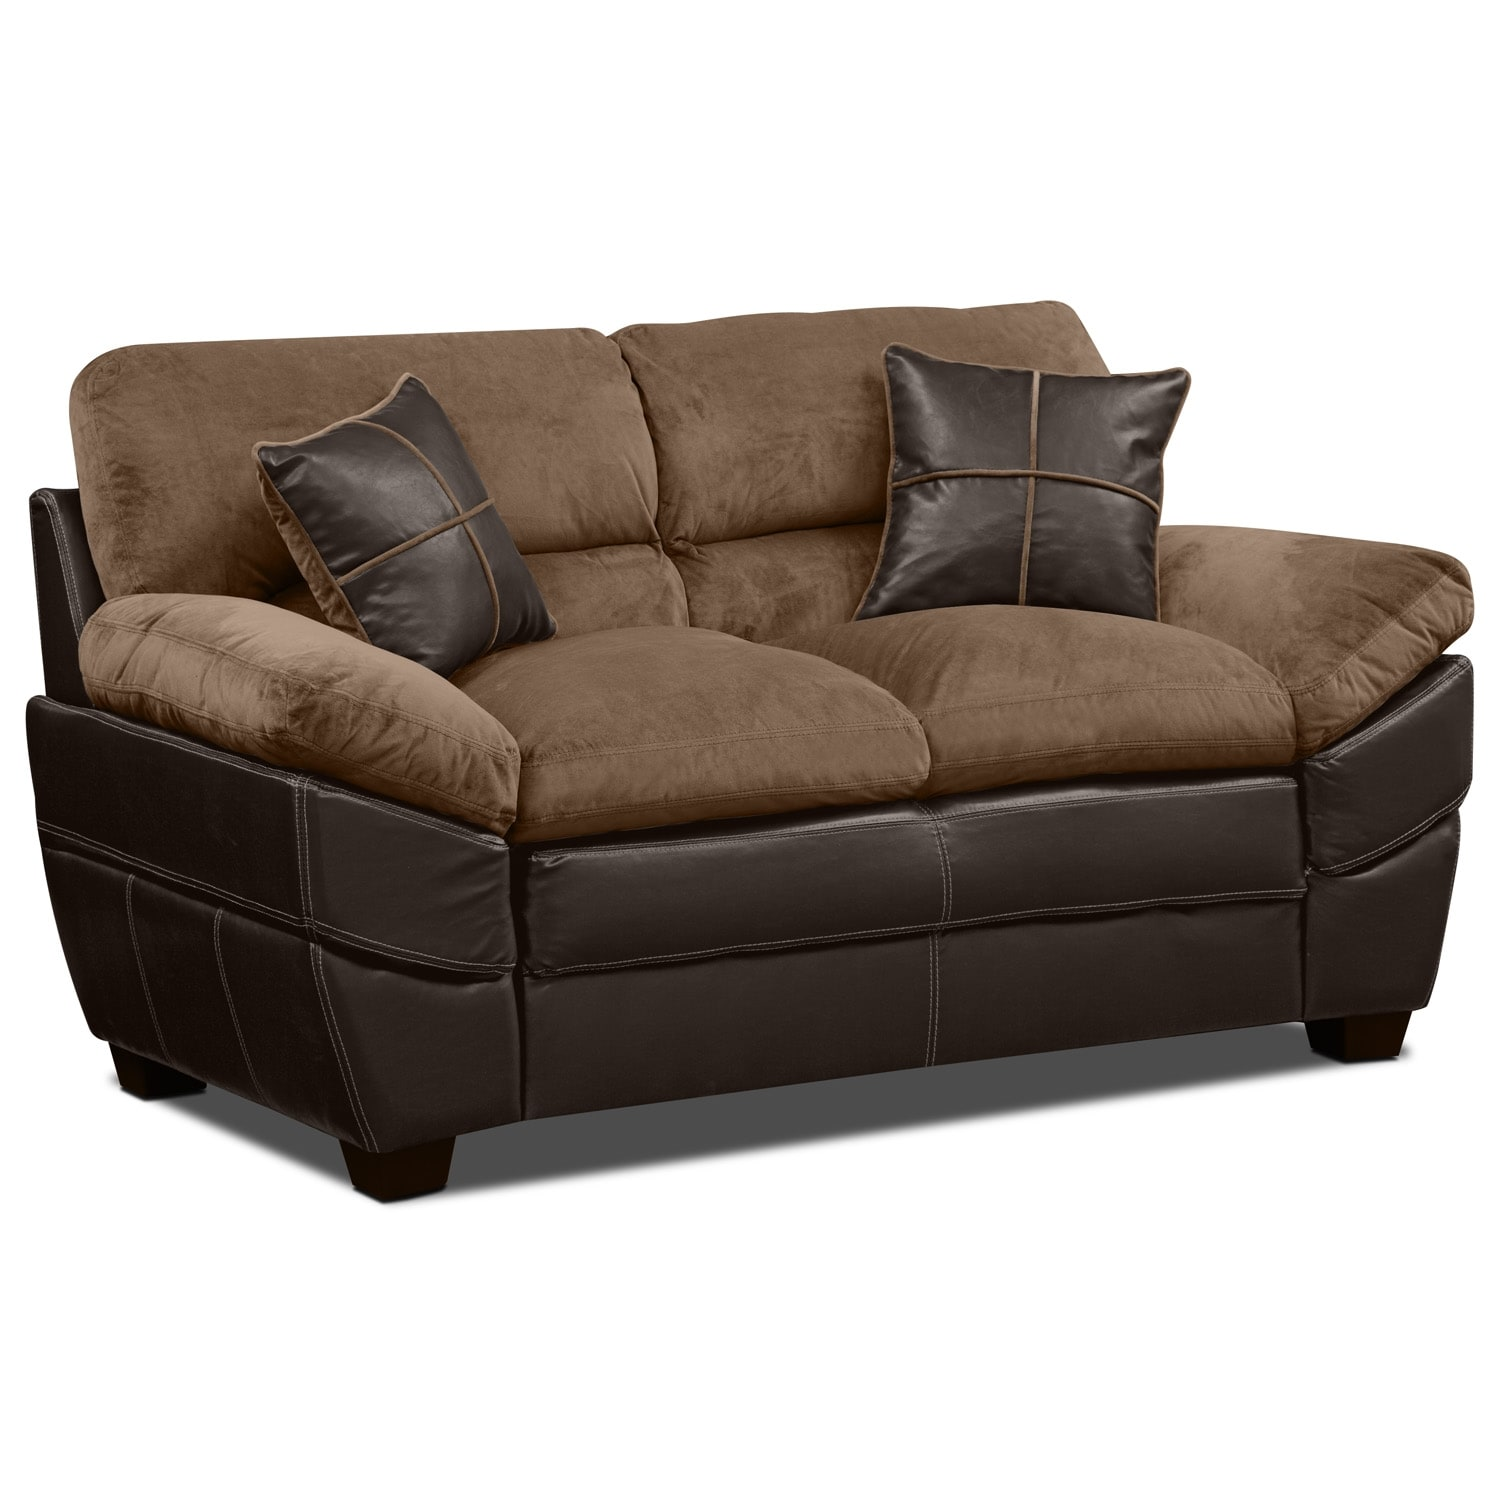 Chandler Beige Loveseat